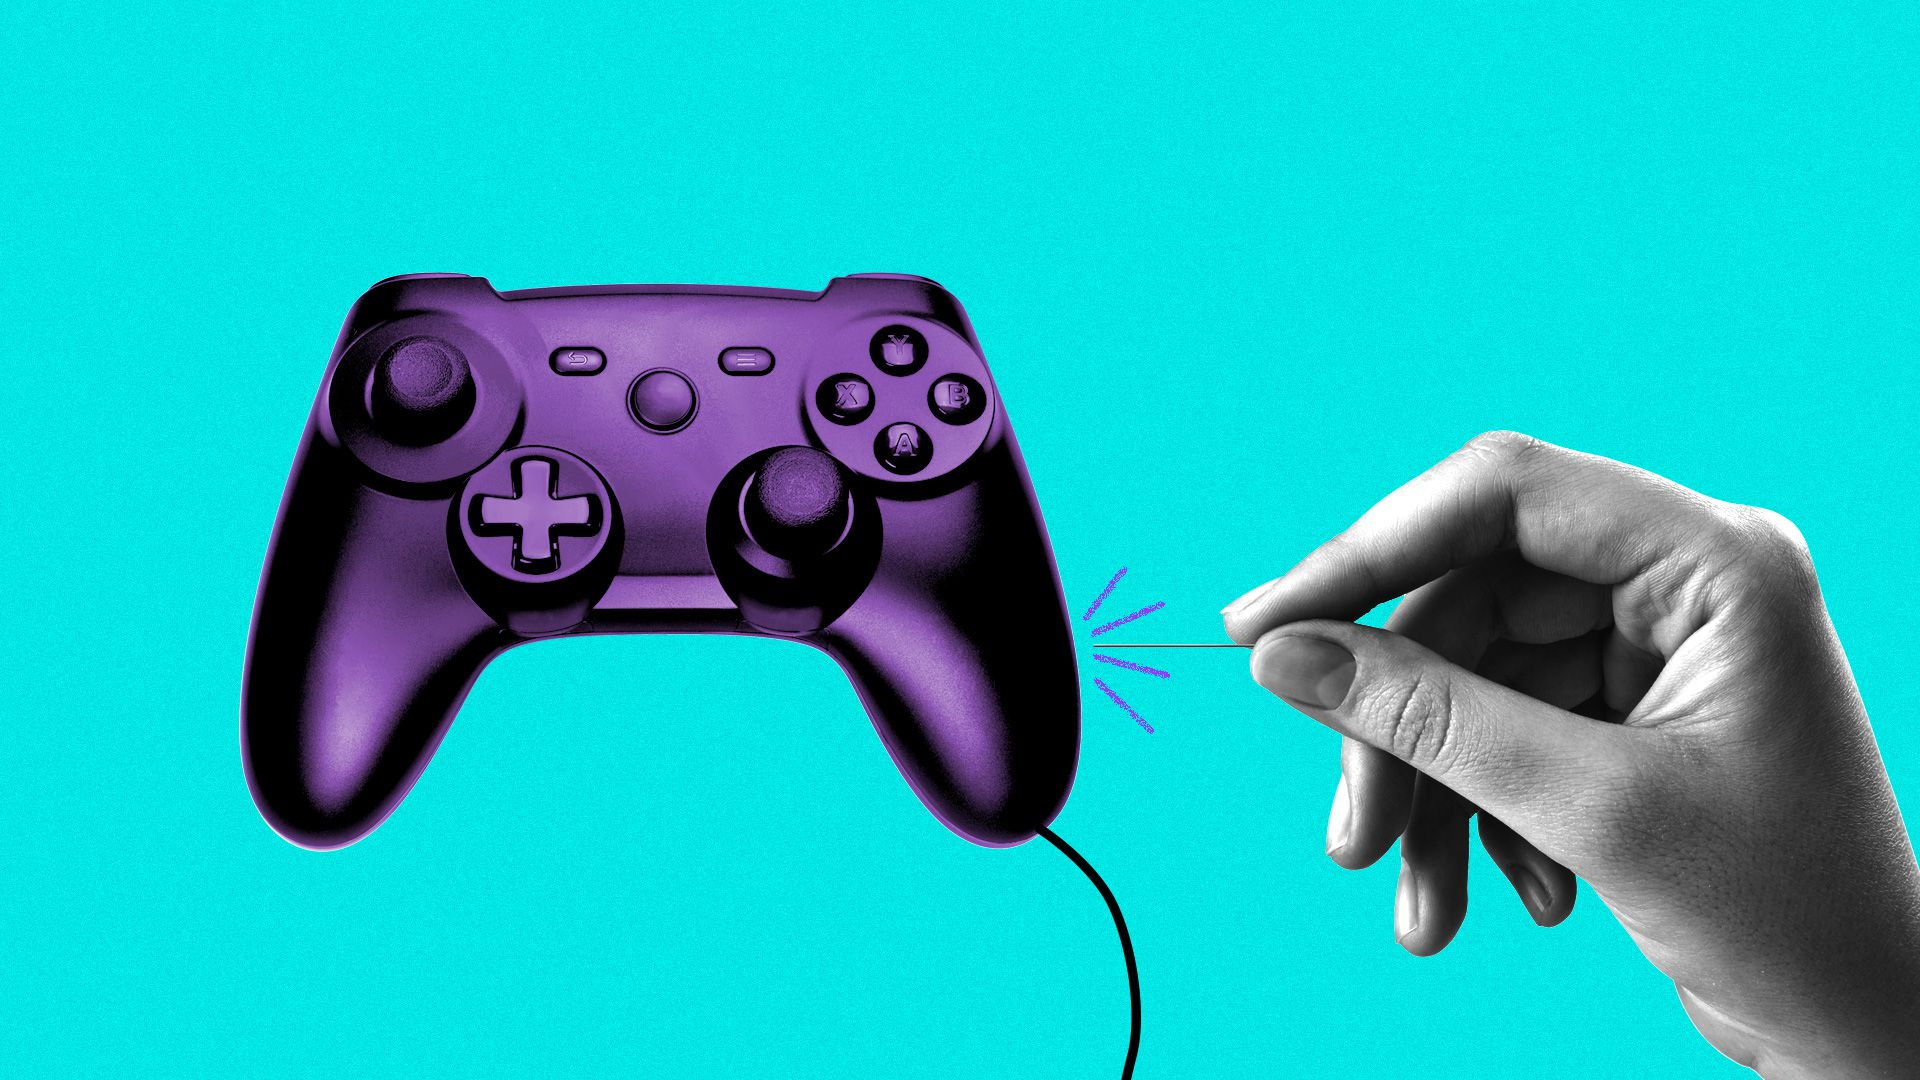 Illustration of a video game controller popping